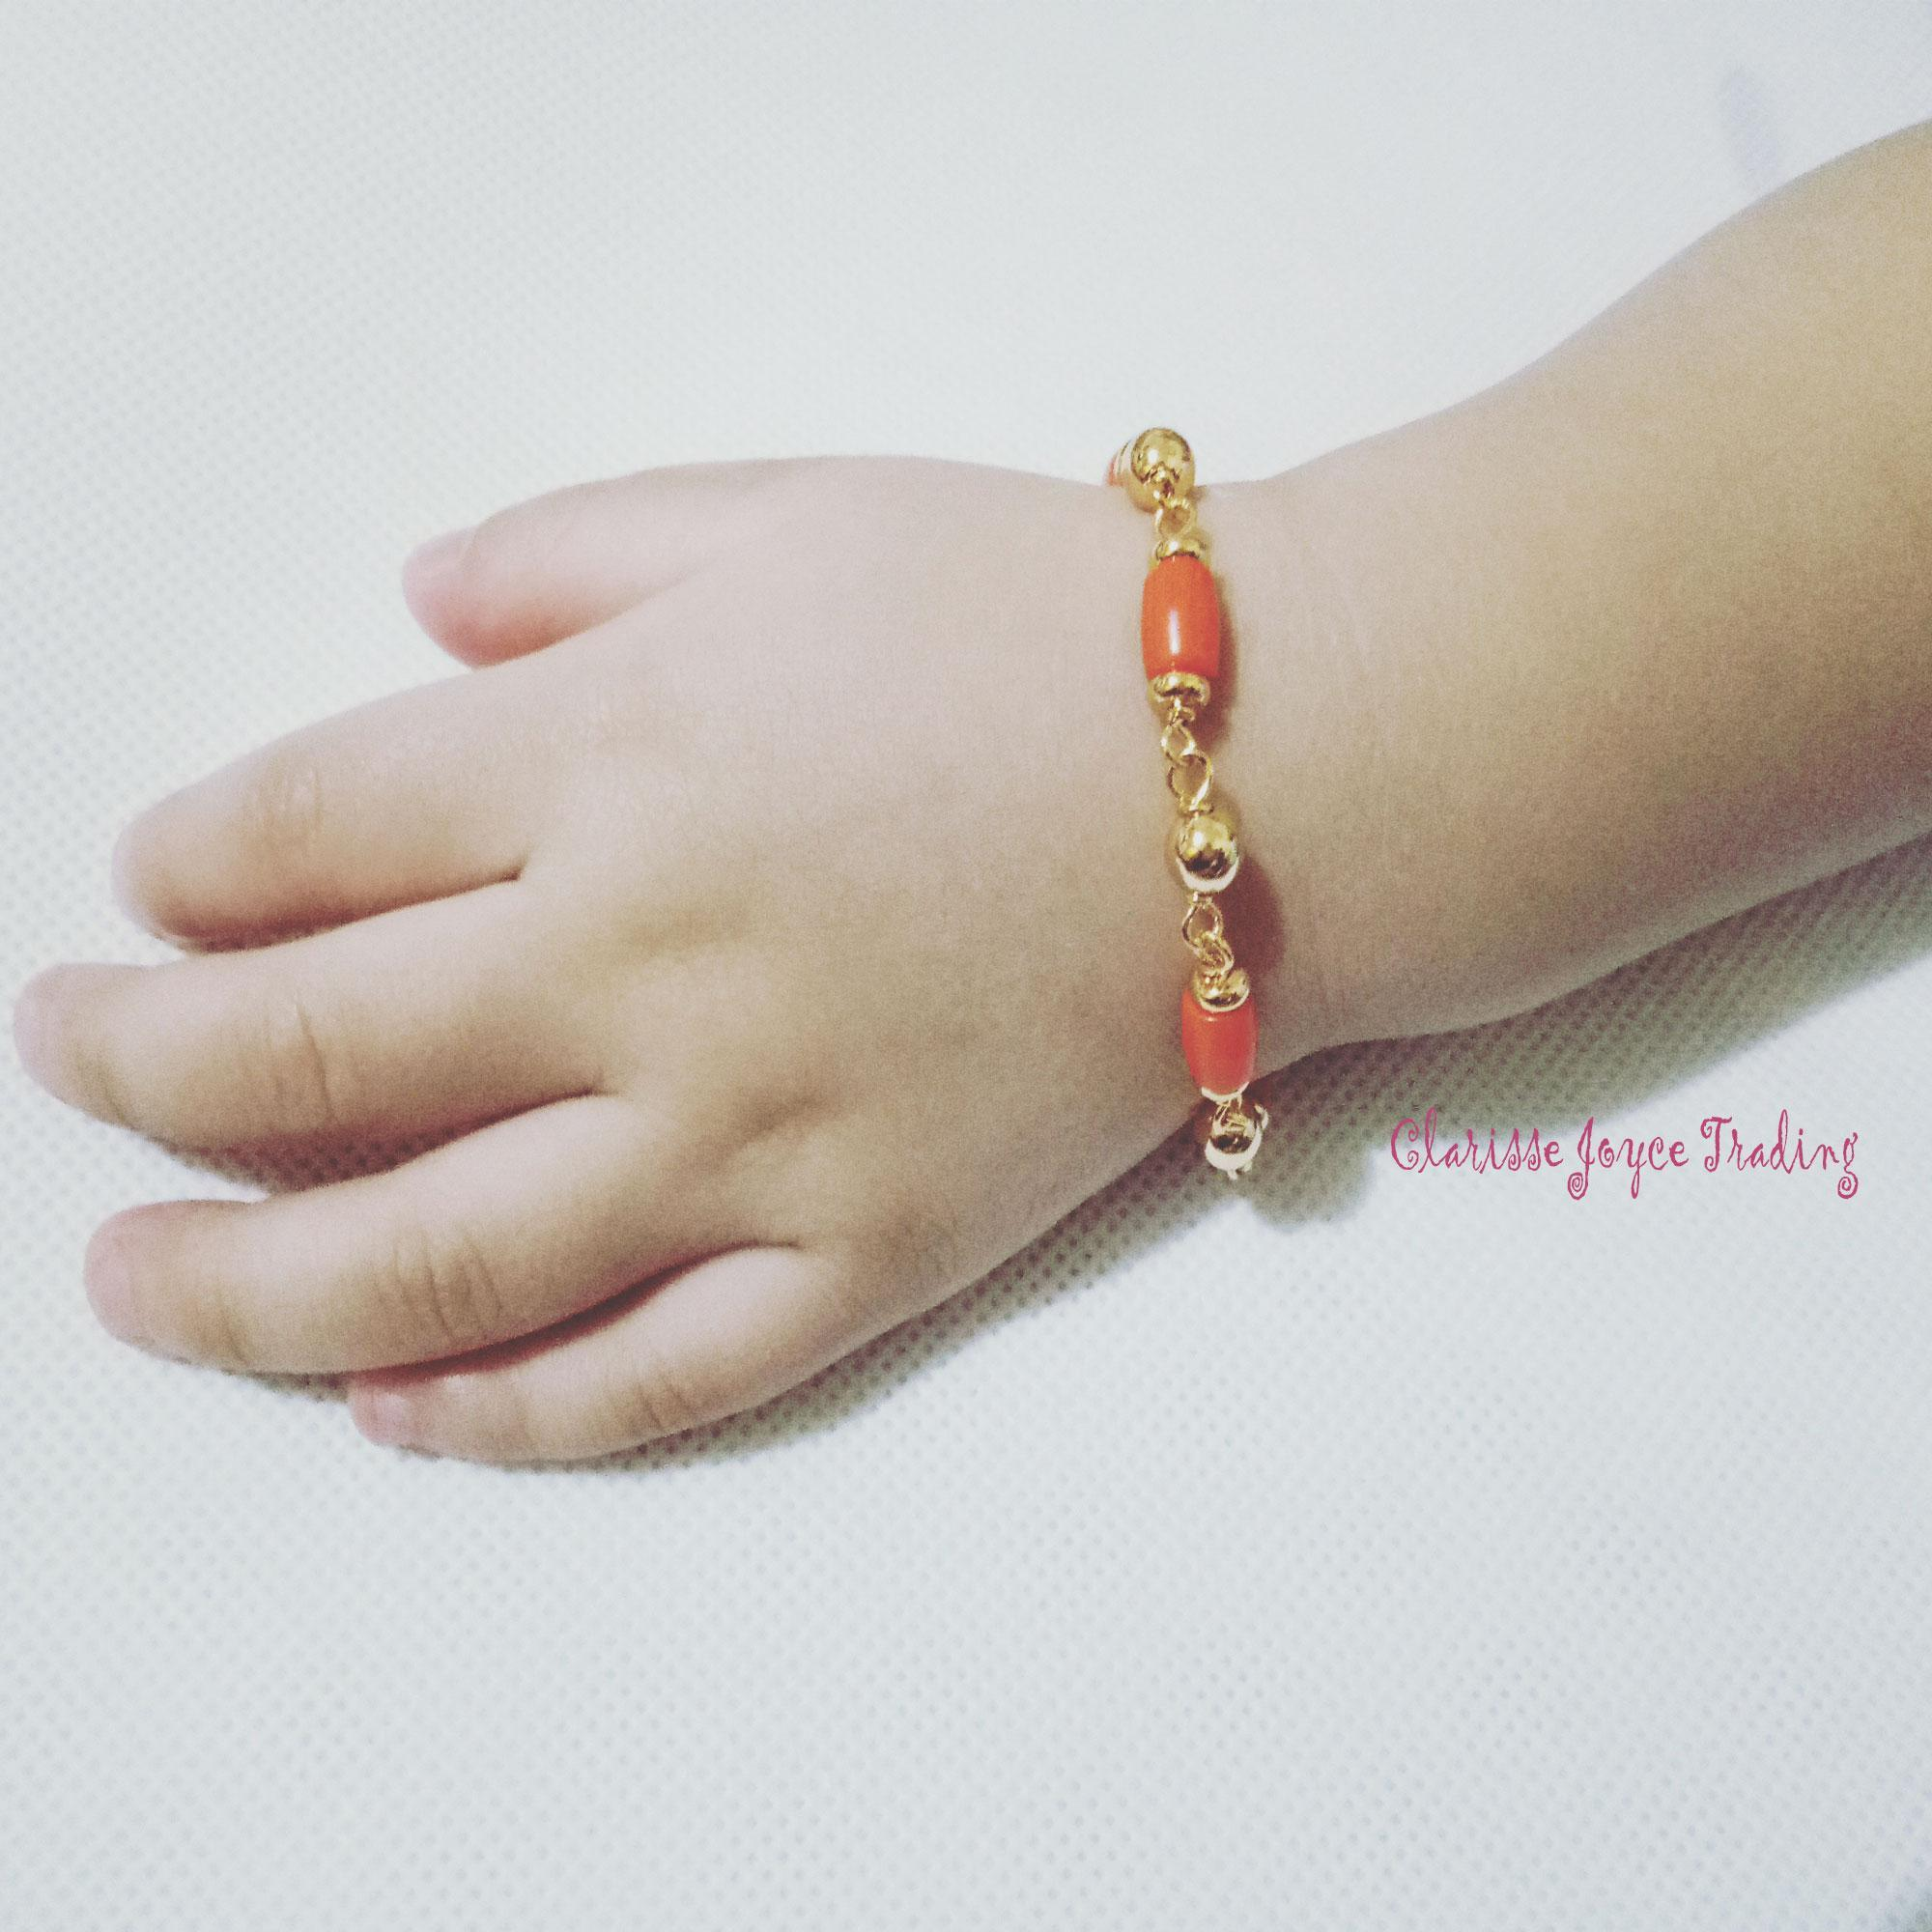 Best Seller Baby Charm Coral Bracelet Korean Style Rosegold (6mos To 24mos) (5 Corales) By Clarisse Joyce Trading.